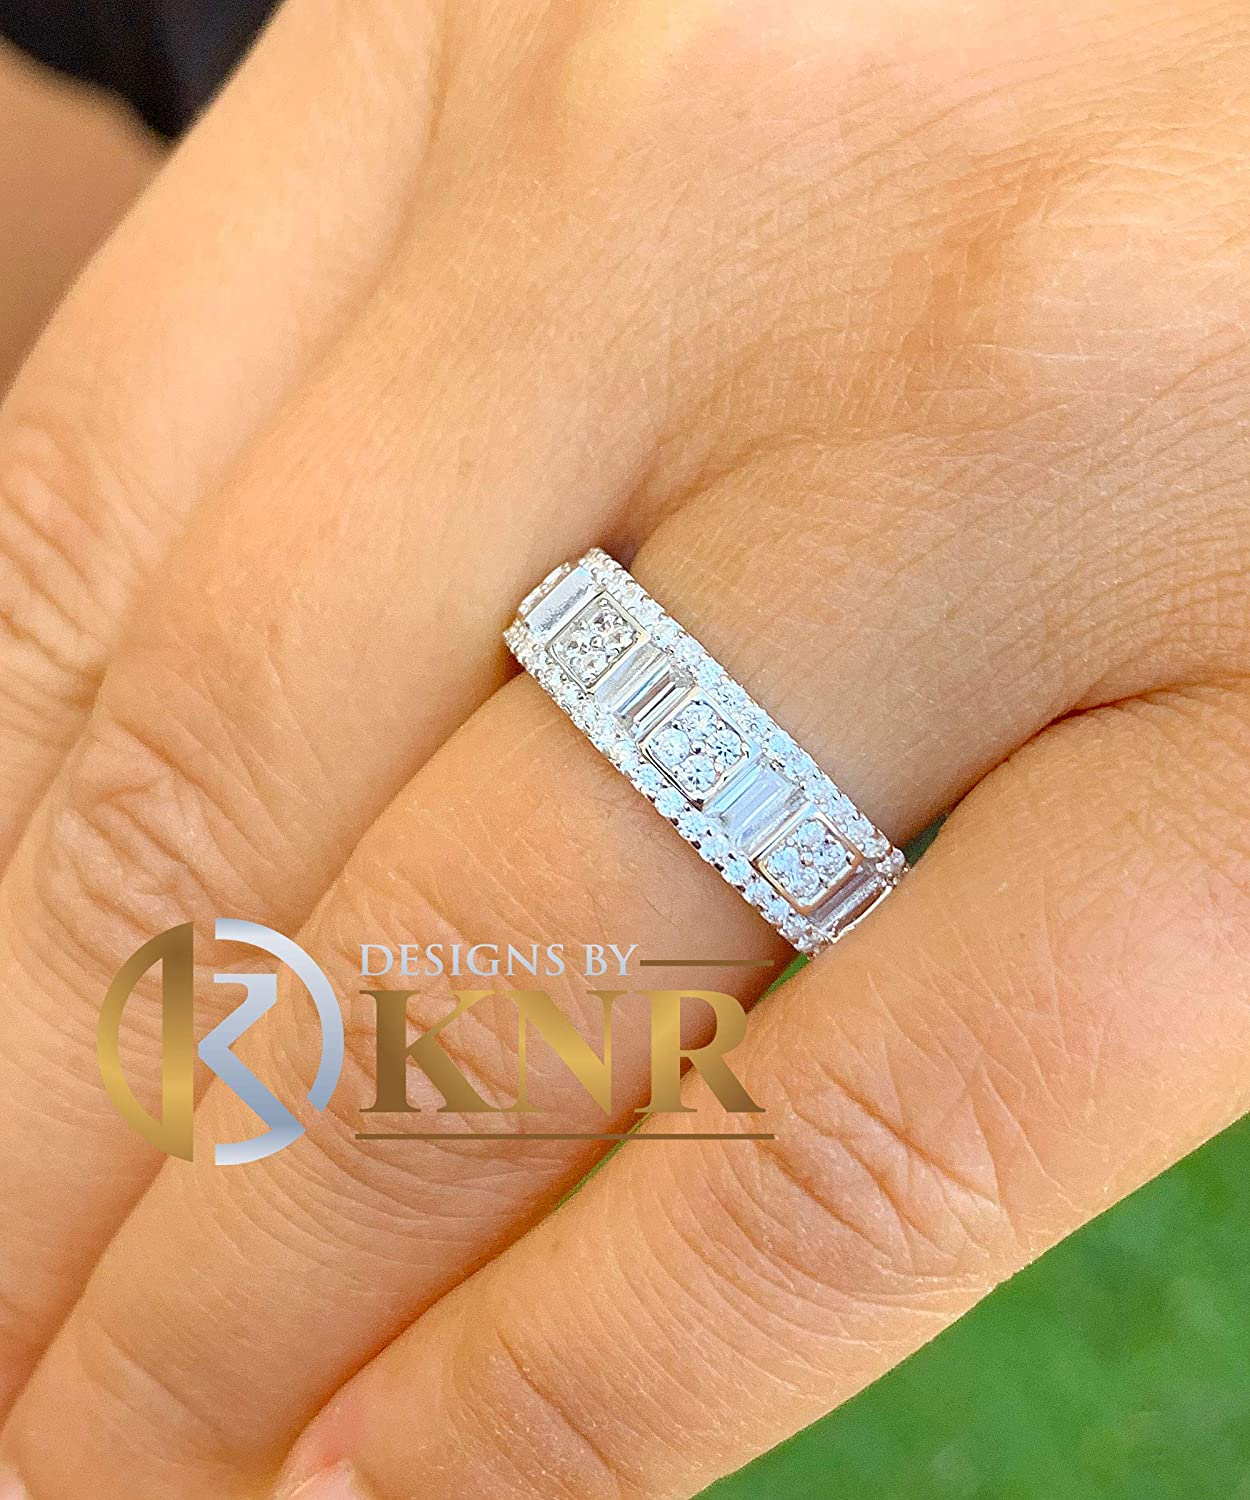 Eternity Style Solid Sterling Silver White Gold Finish With Round And Baguettes Cut Simulated Diamond Band Wedding Anniversary 3.00ctw 6.0mm